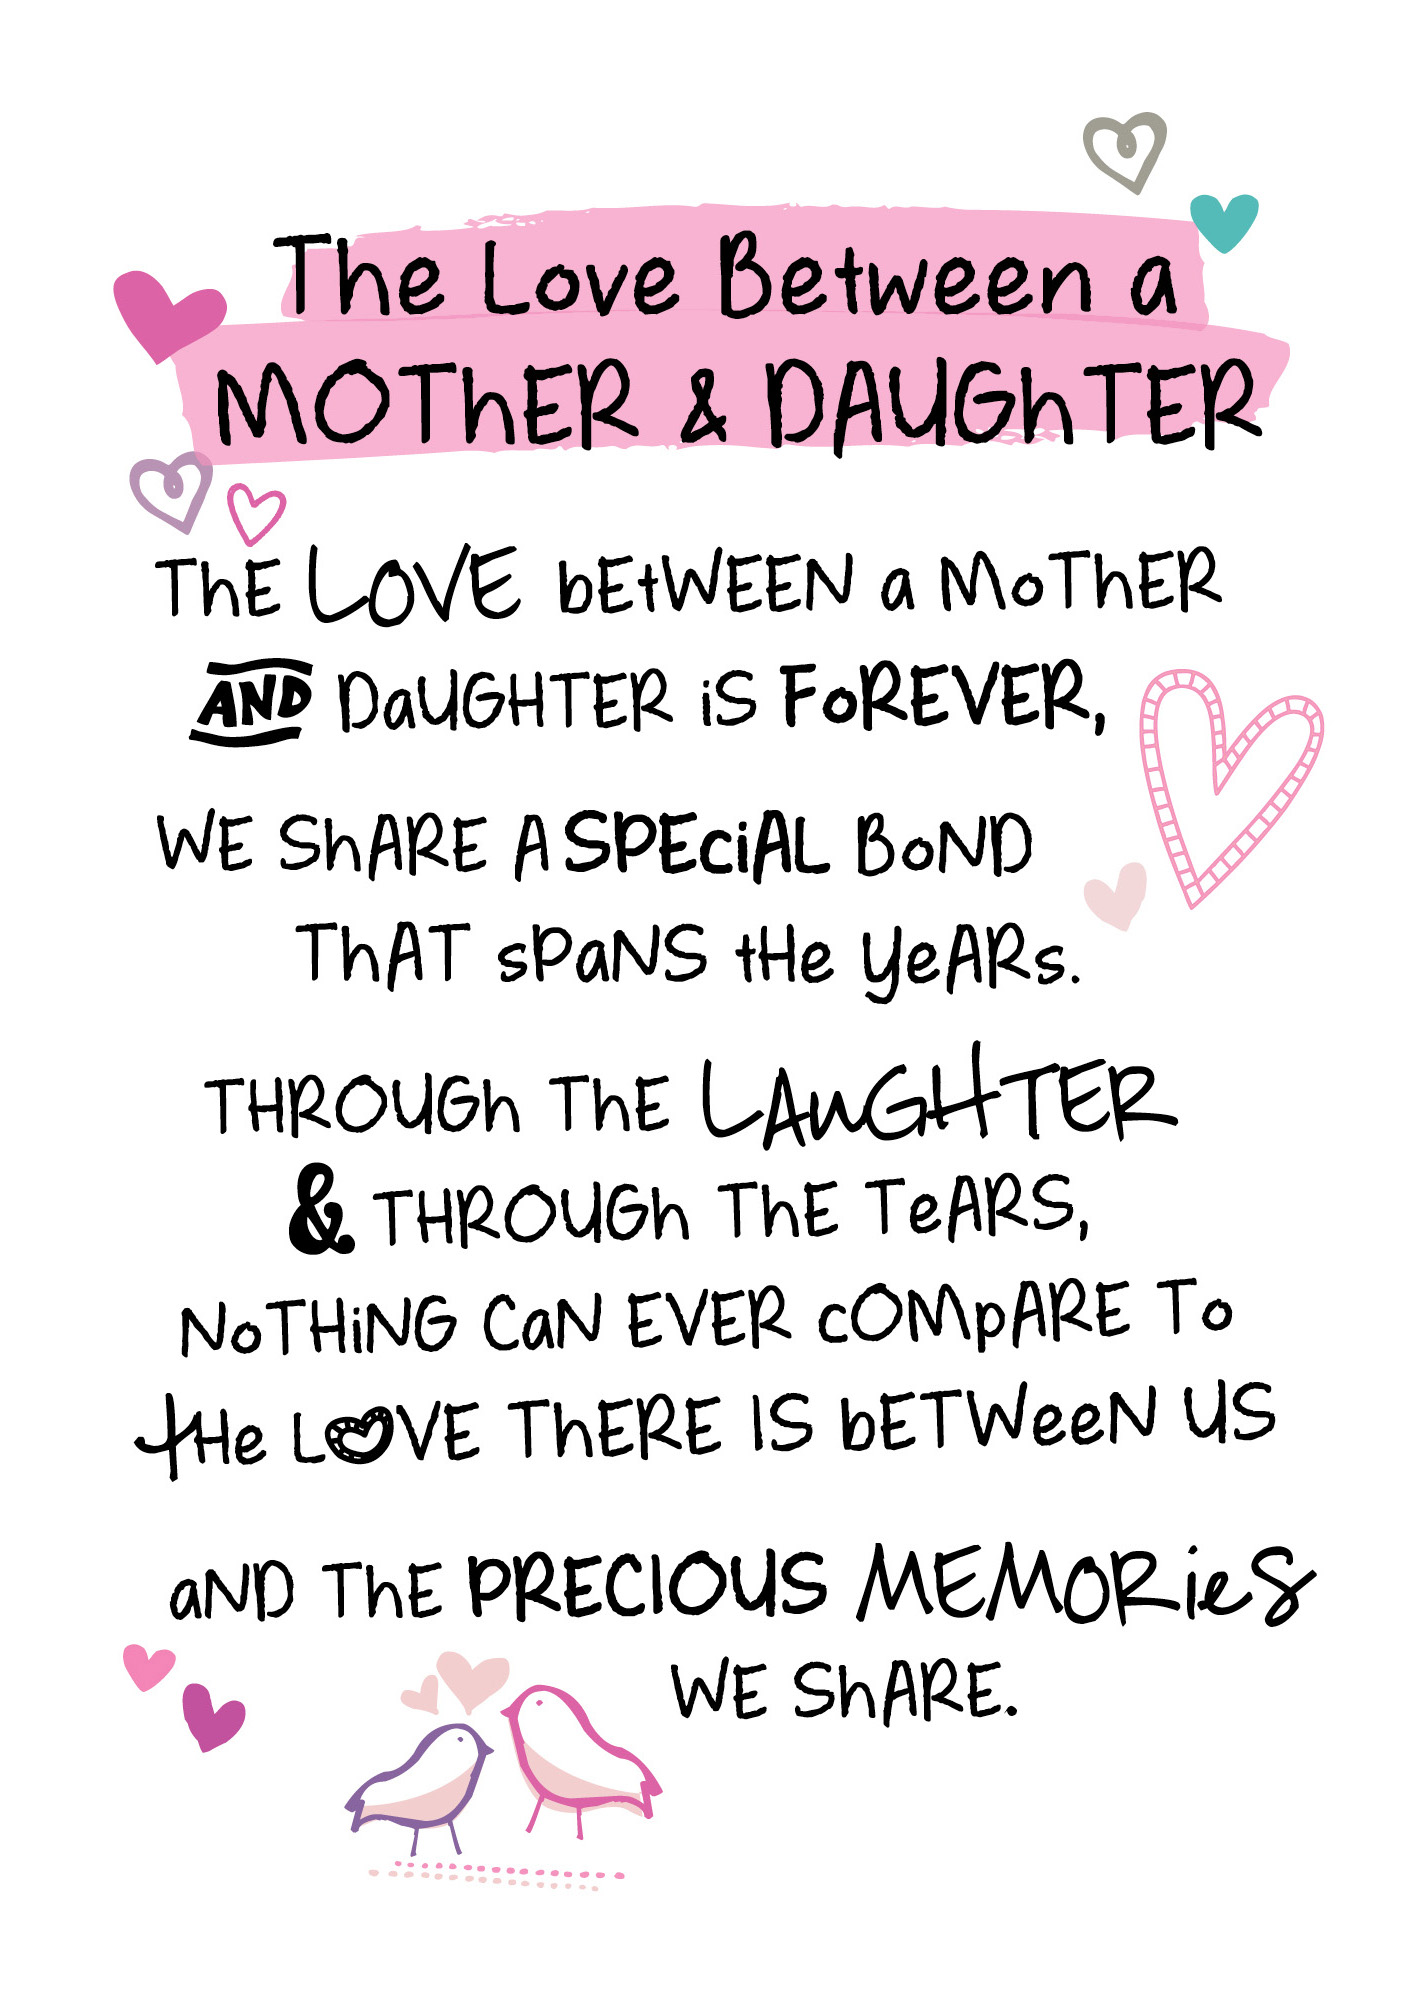 Terrific Mother Daughter Love Inspired Words Greeting Card Blank Inside Funny Birthday Cards Online Inifodamsfinfo